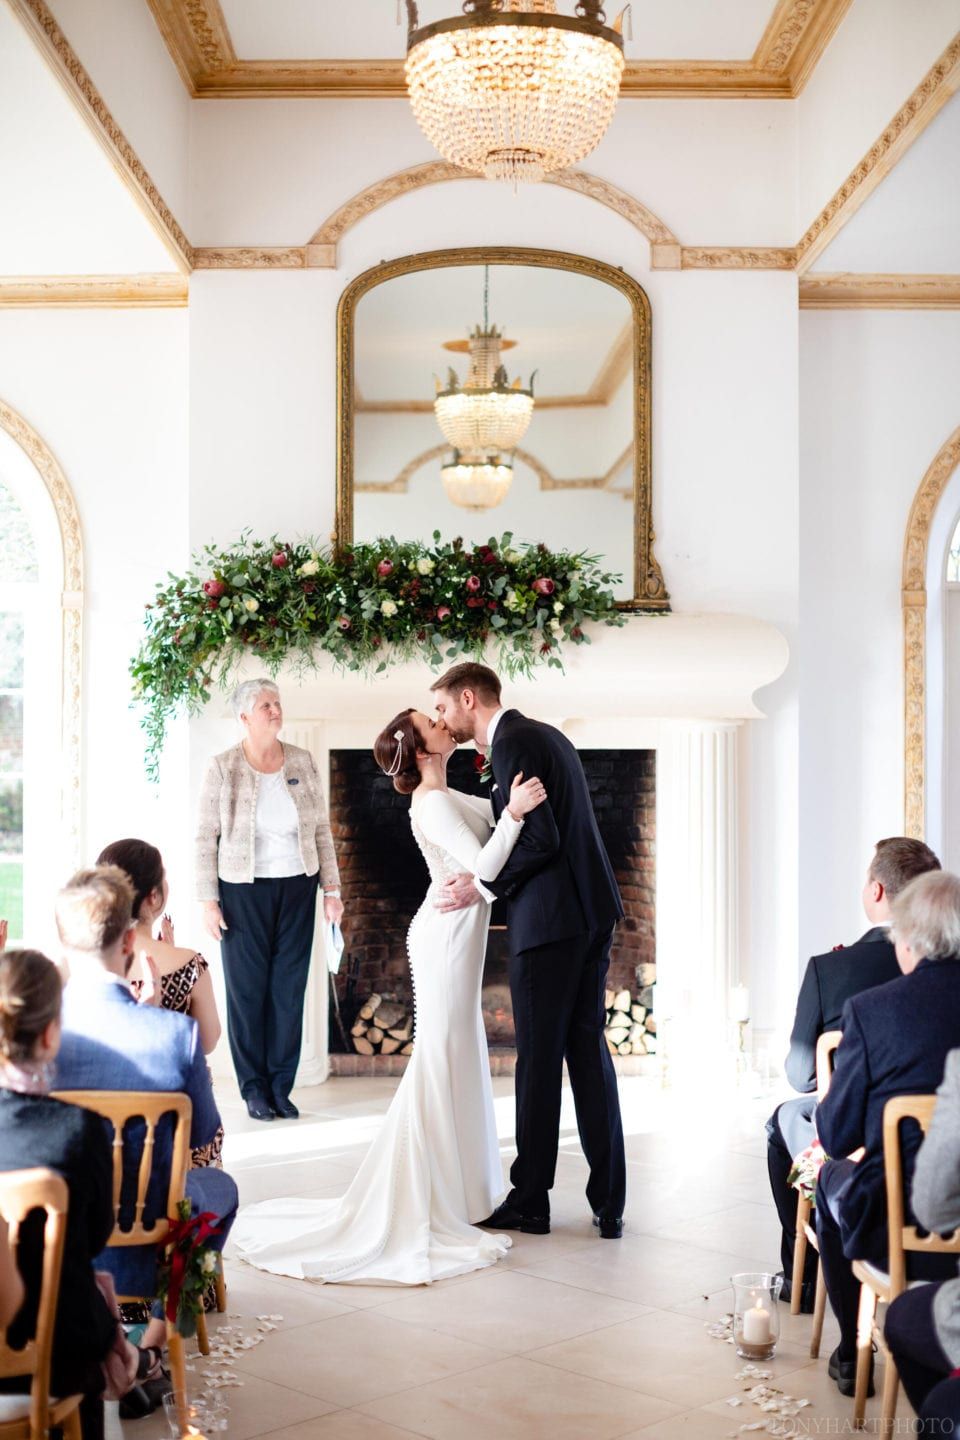 Northbrook Park Wedding Photography - James & Jemima's First Kiss in The Vine Room